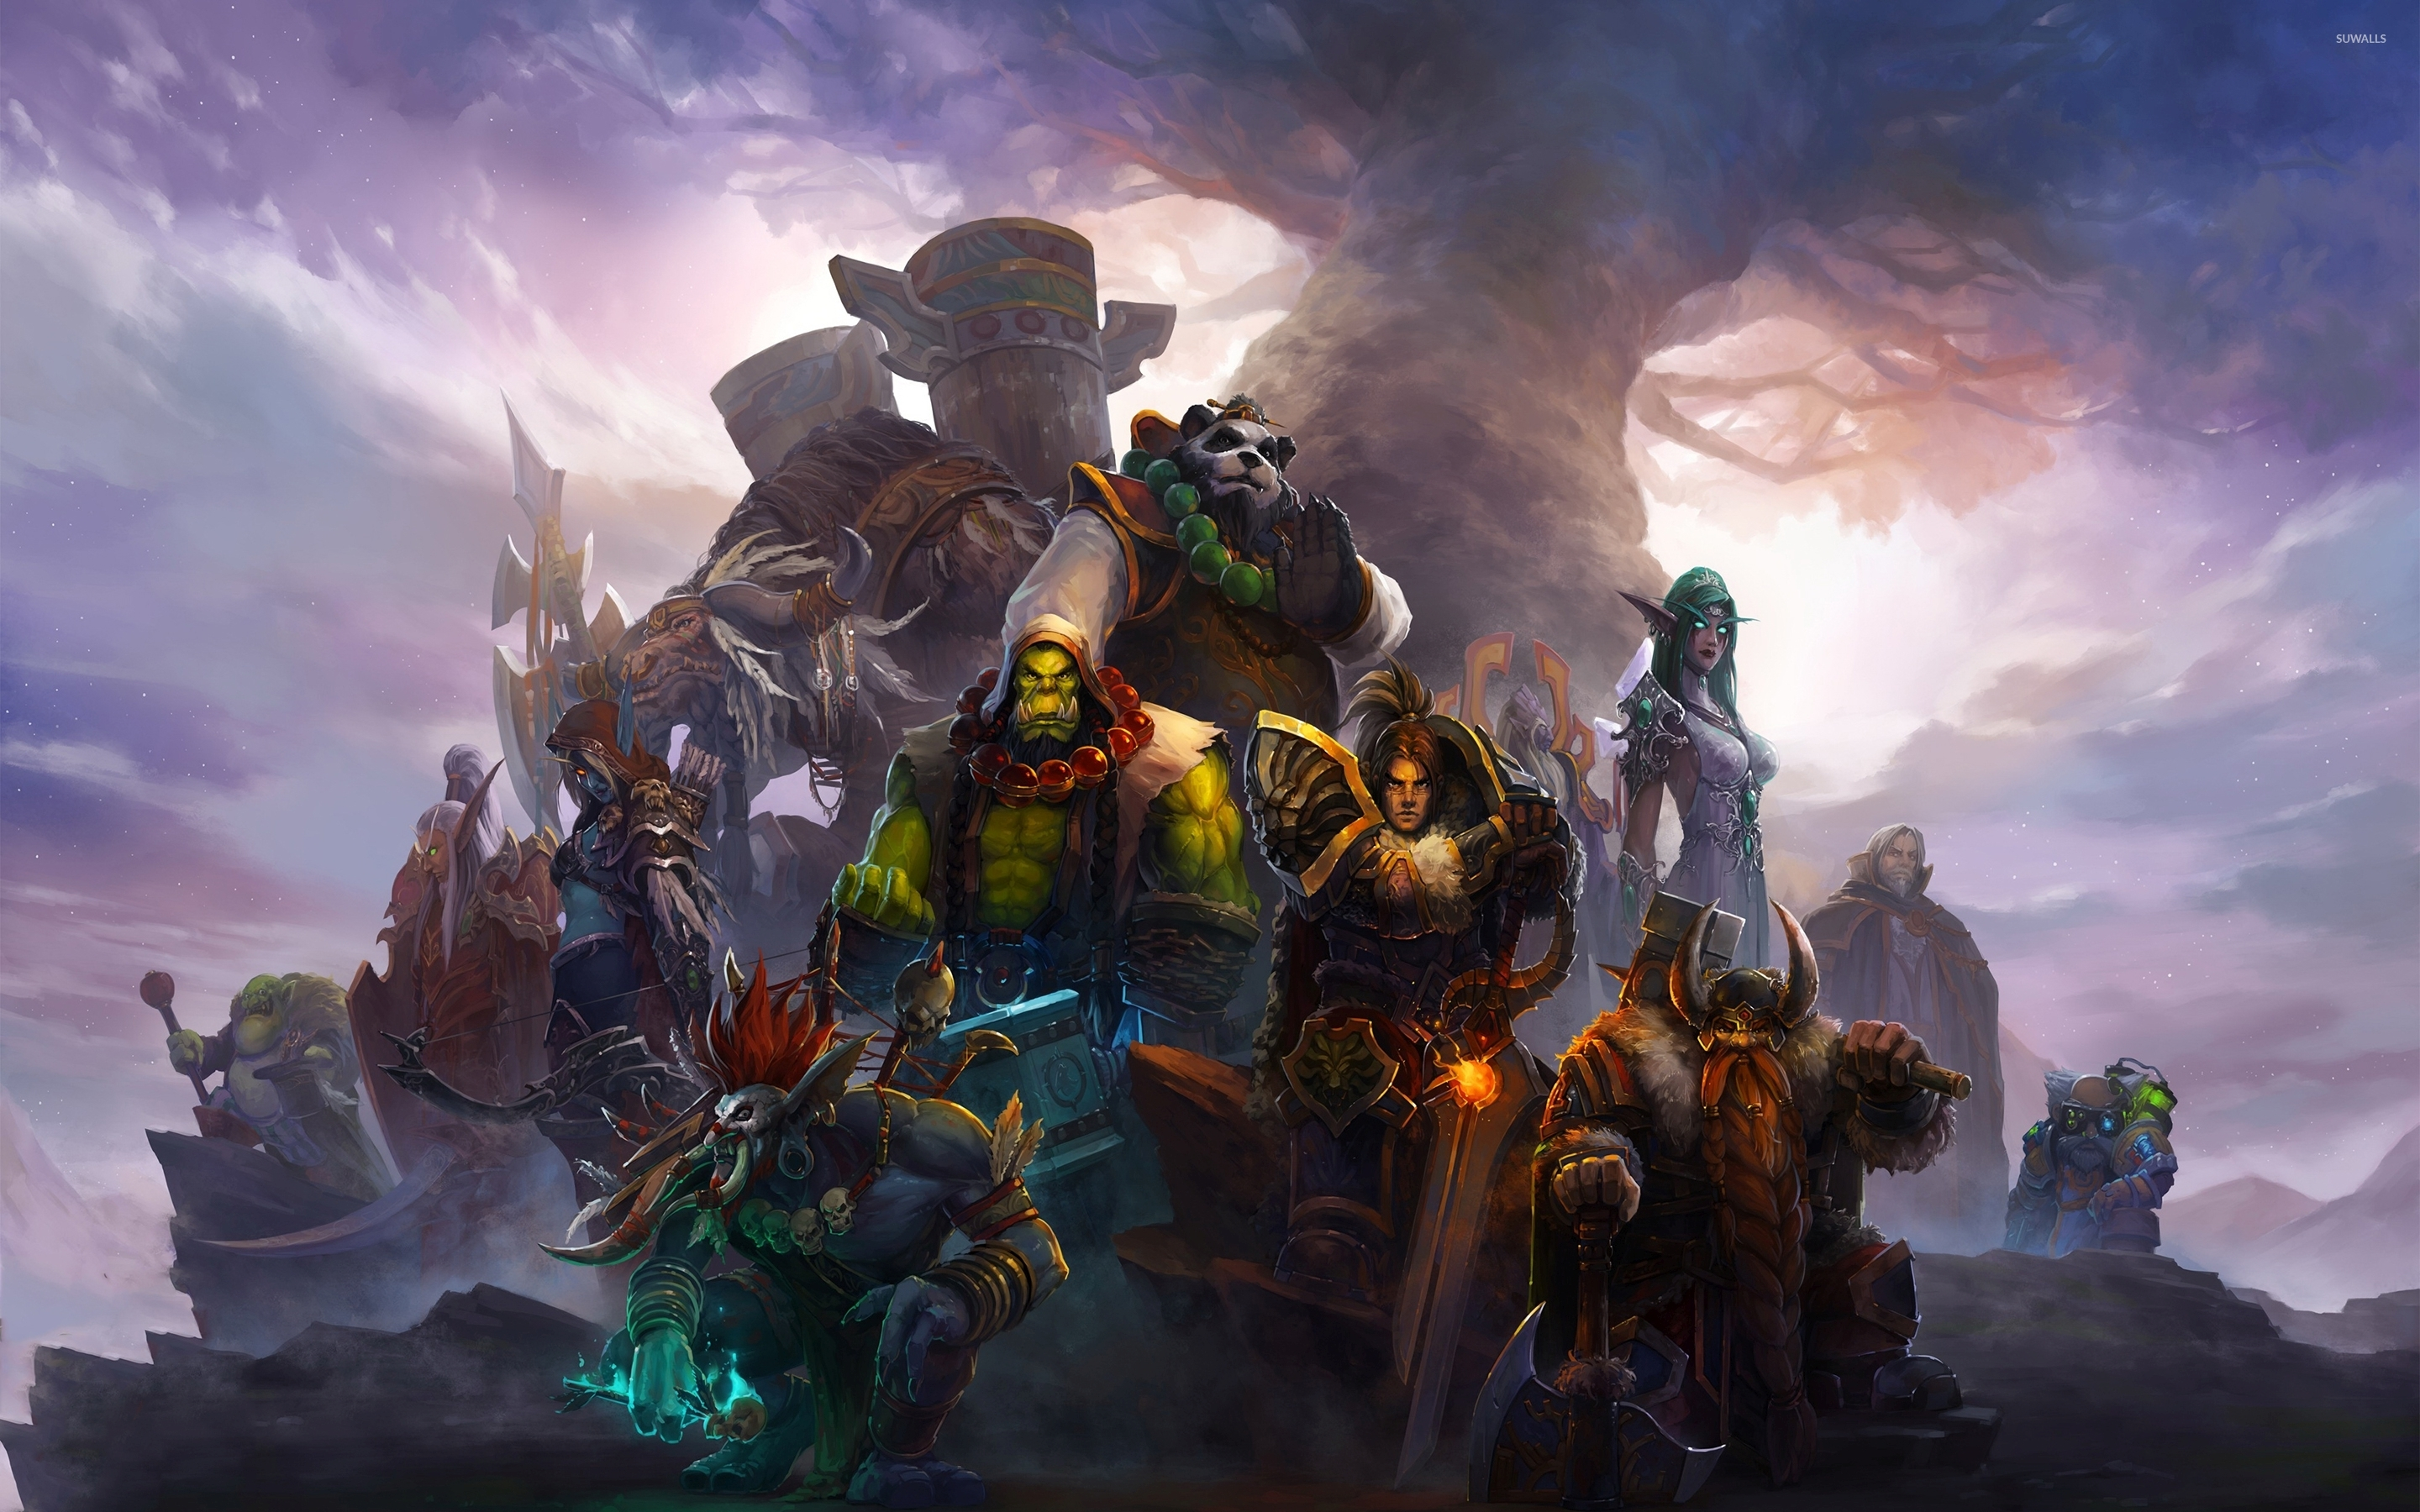 World of Warcraft warriors wallpaper - Game wallpapers ...